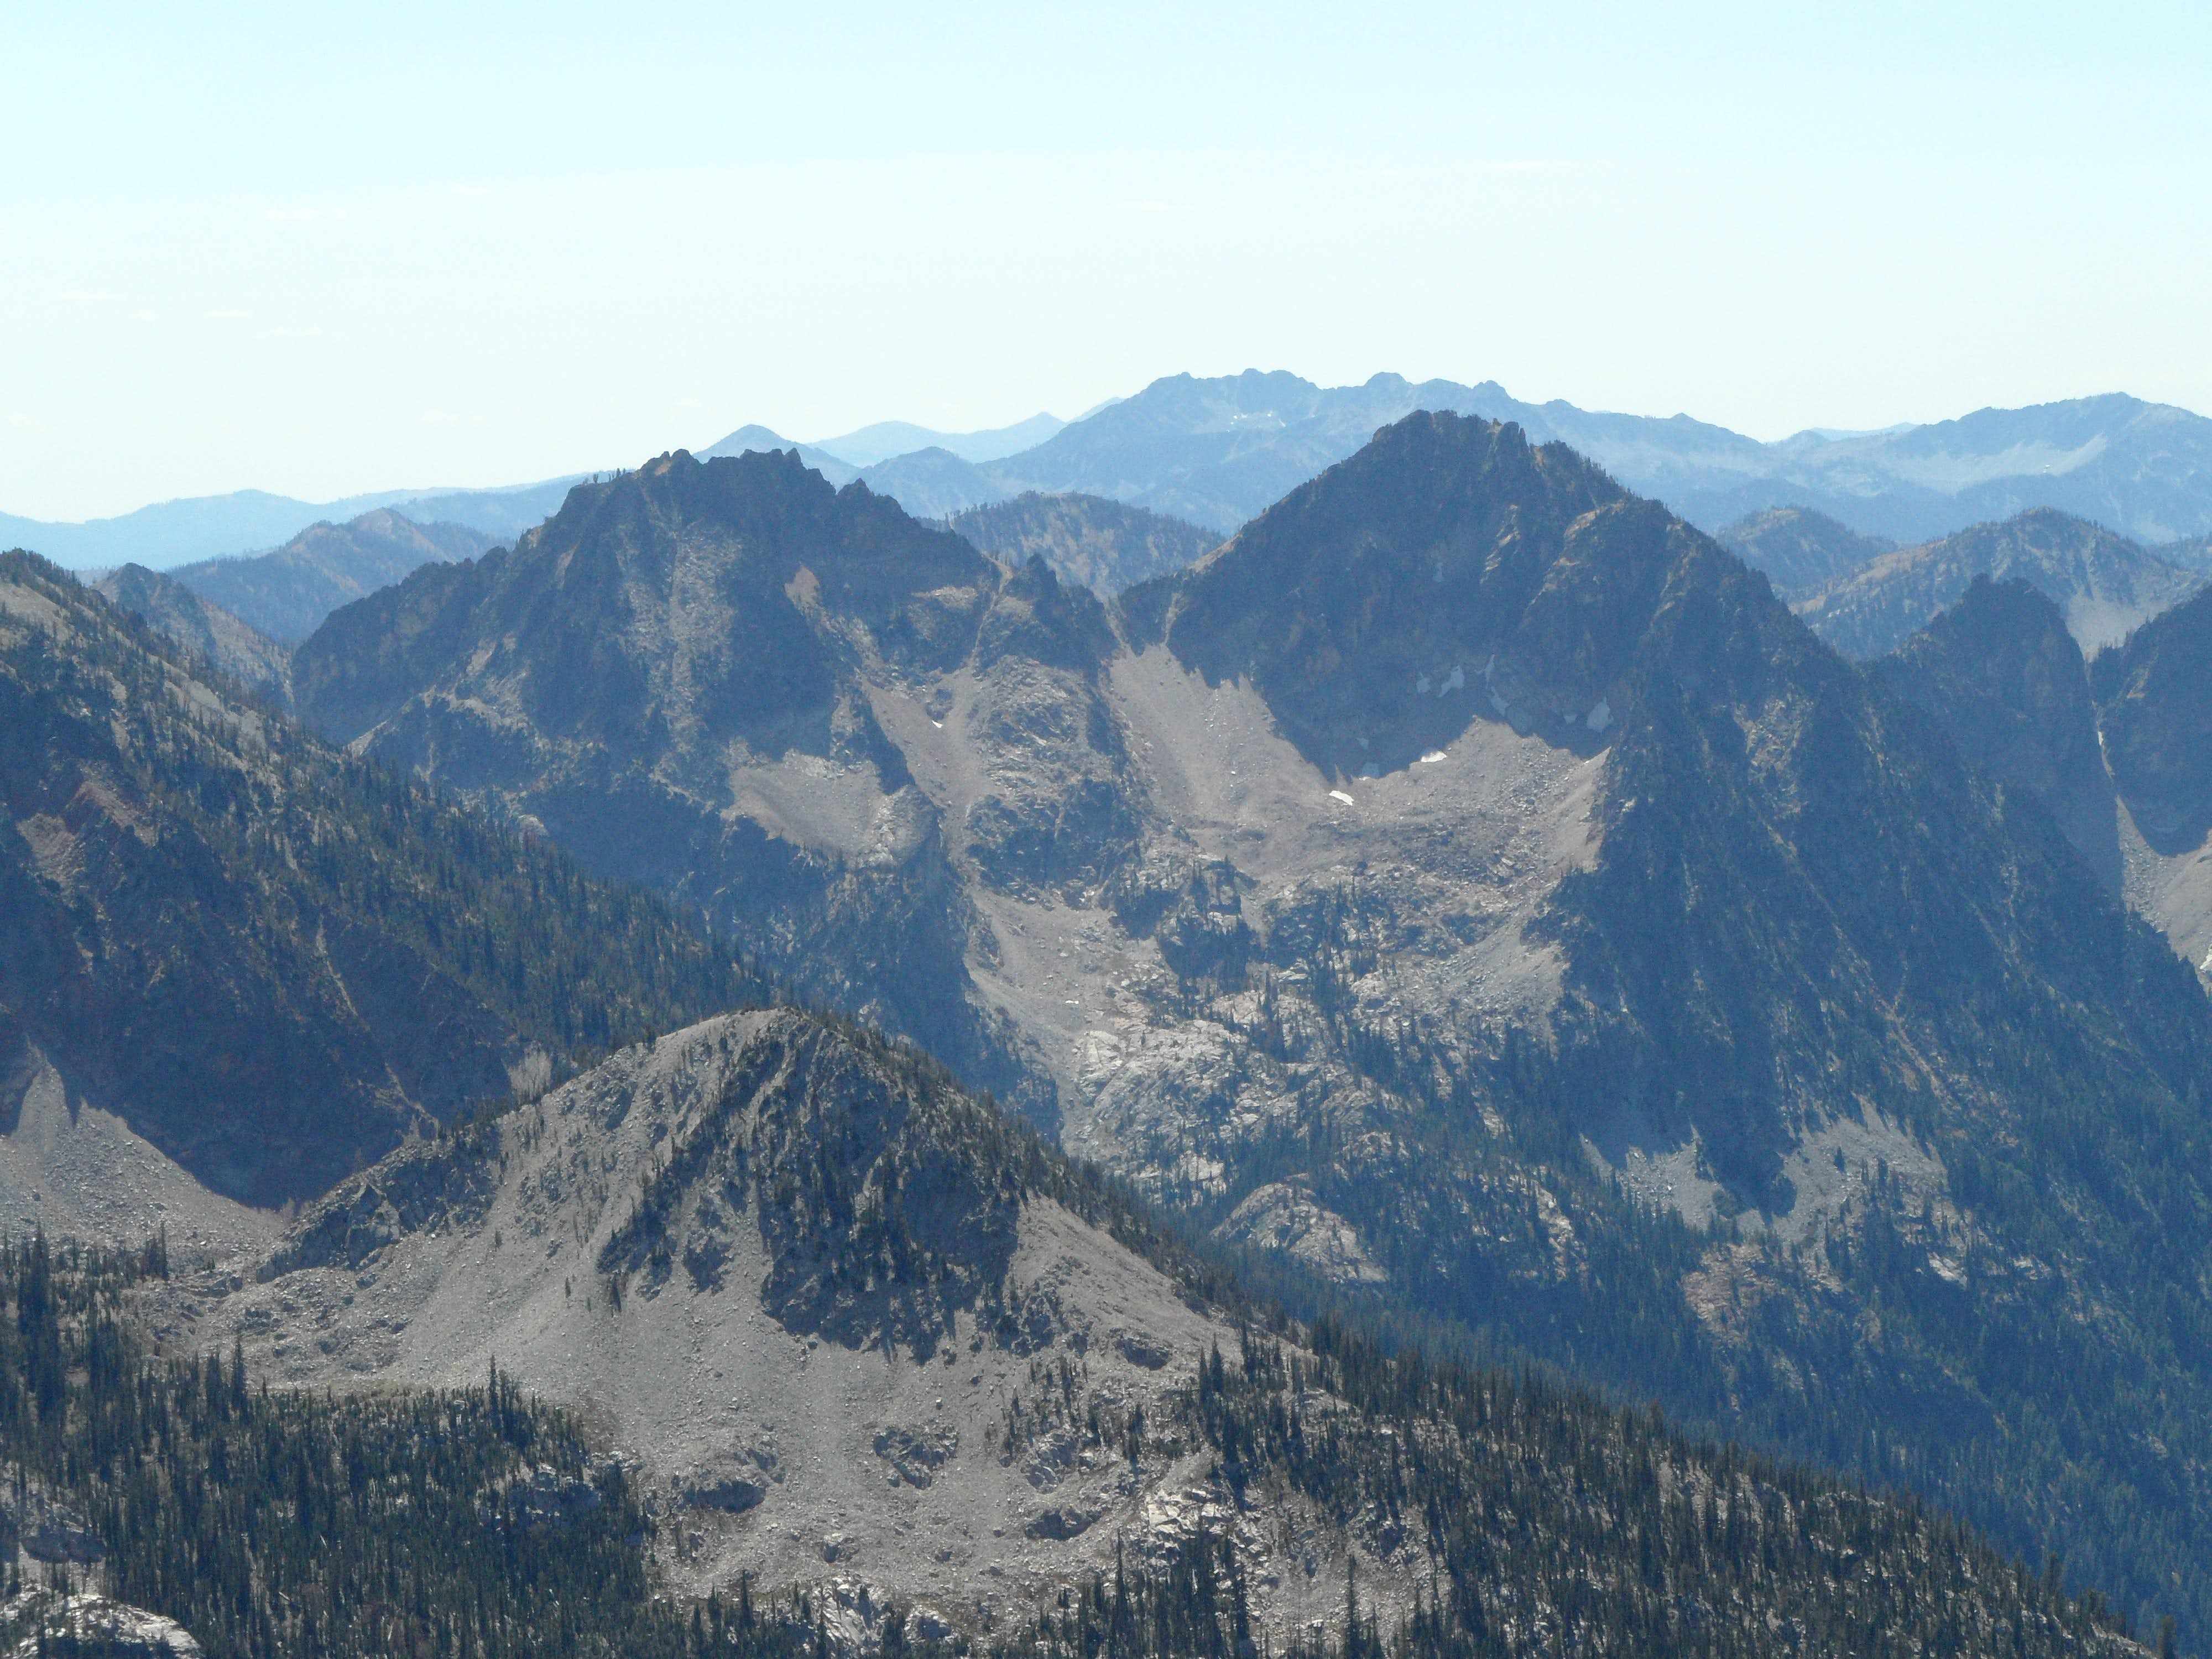 Mattingly Peak